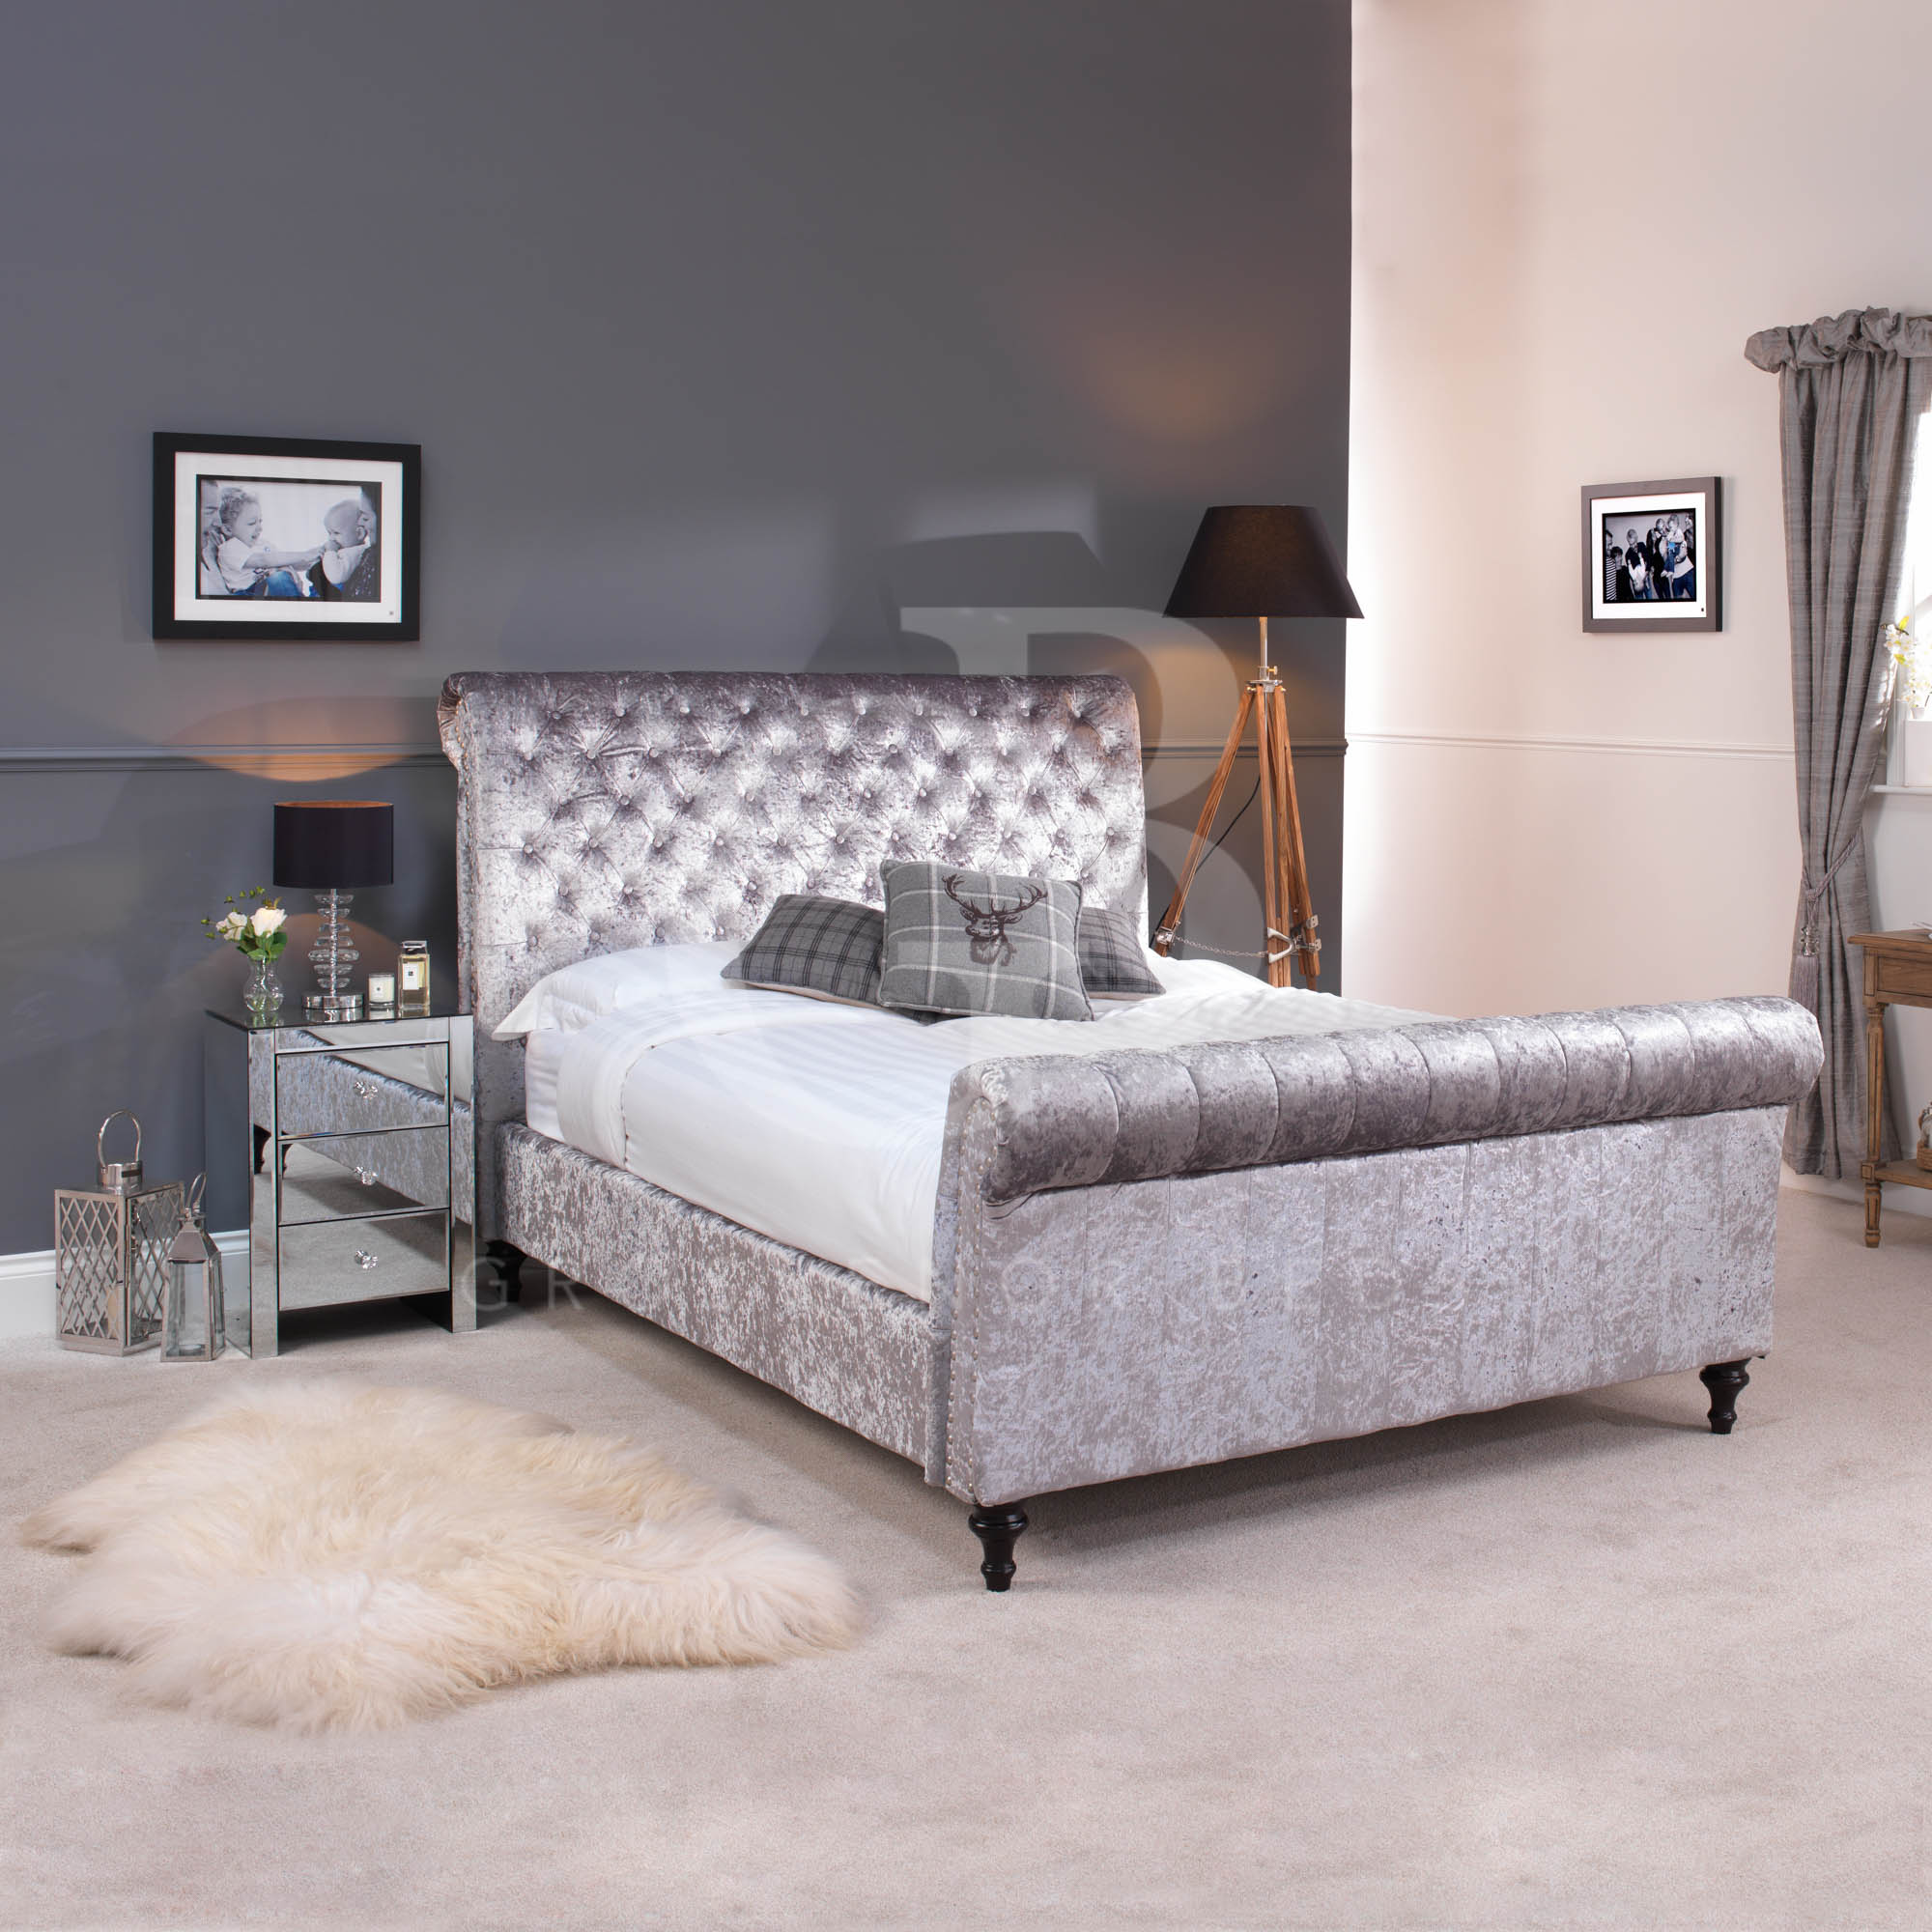 Silver Grey Bedroom Ideas Crushed Velvet Silver Grey Chesterfield Bed In Double